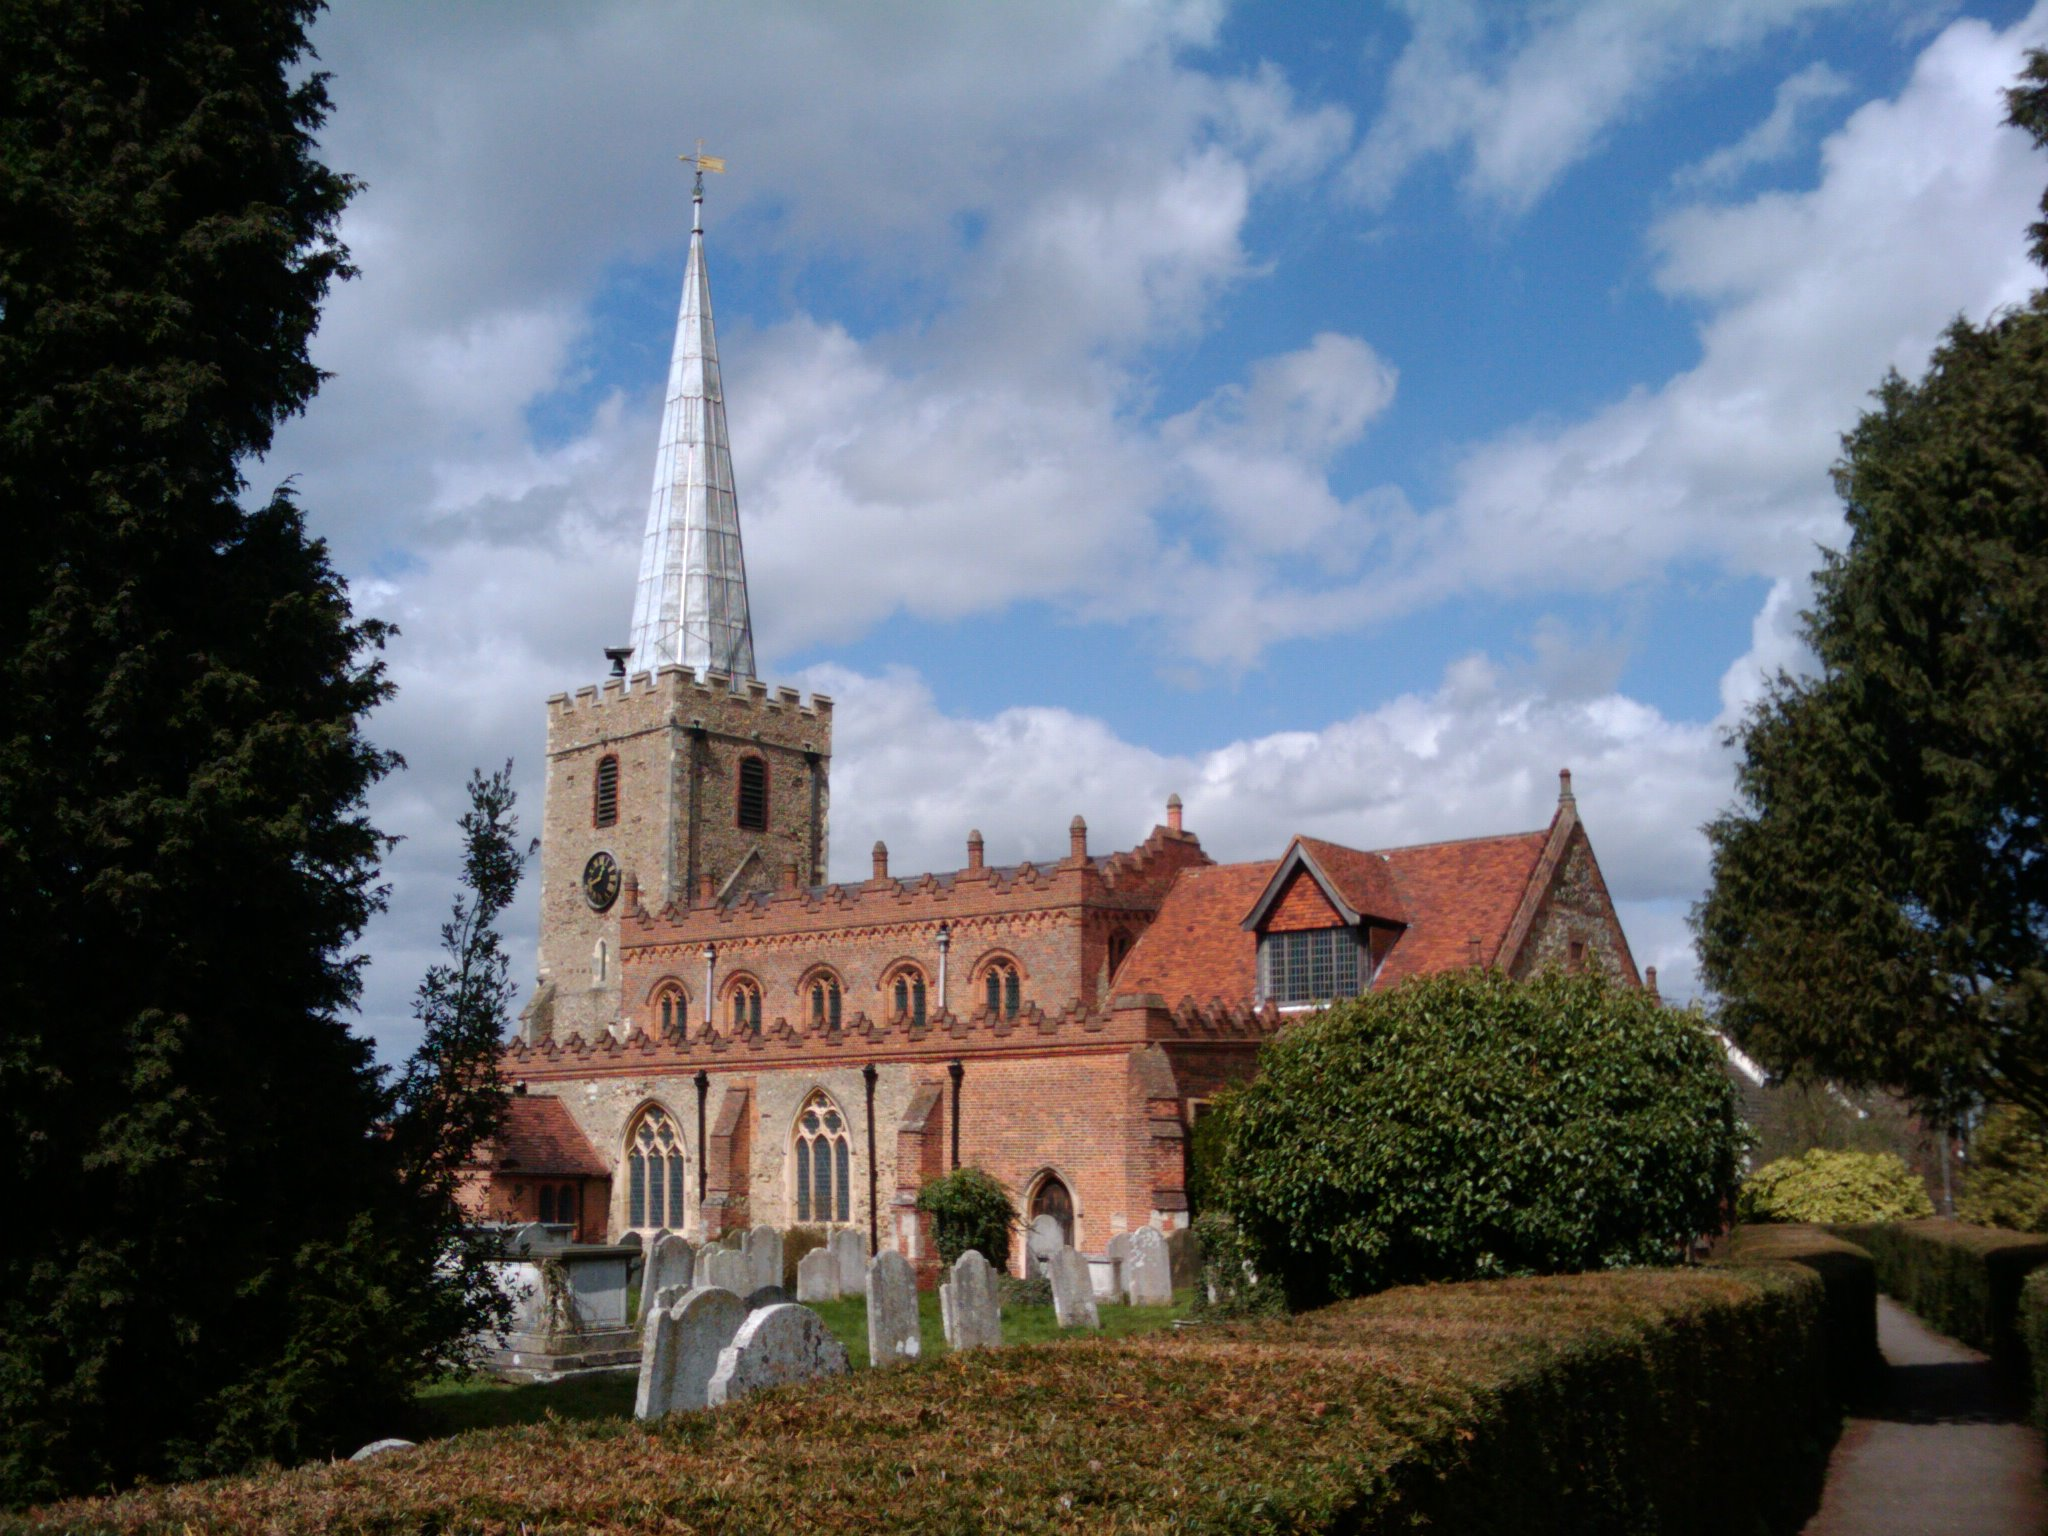 St Marys Church by Jon Wade